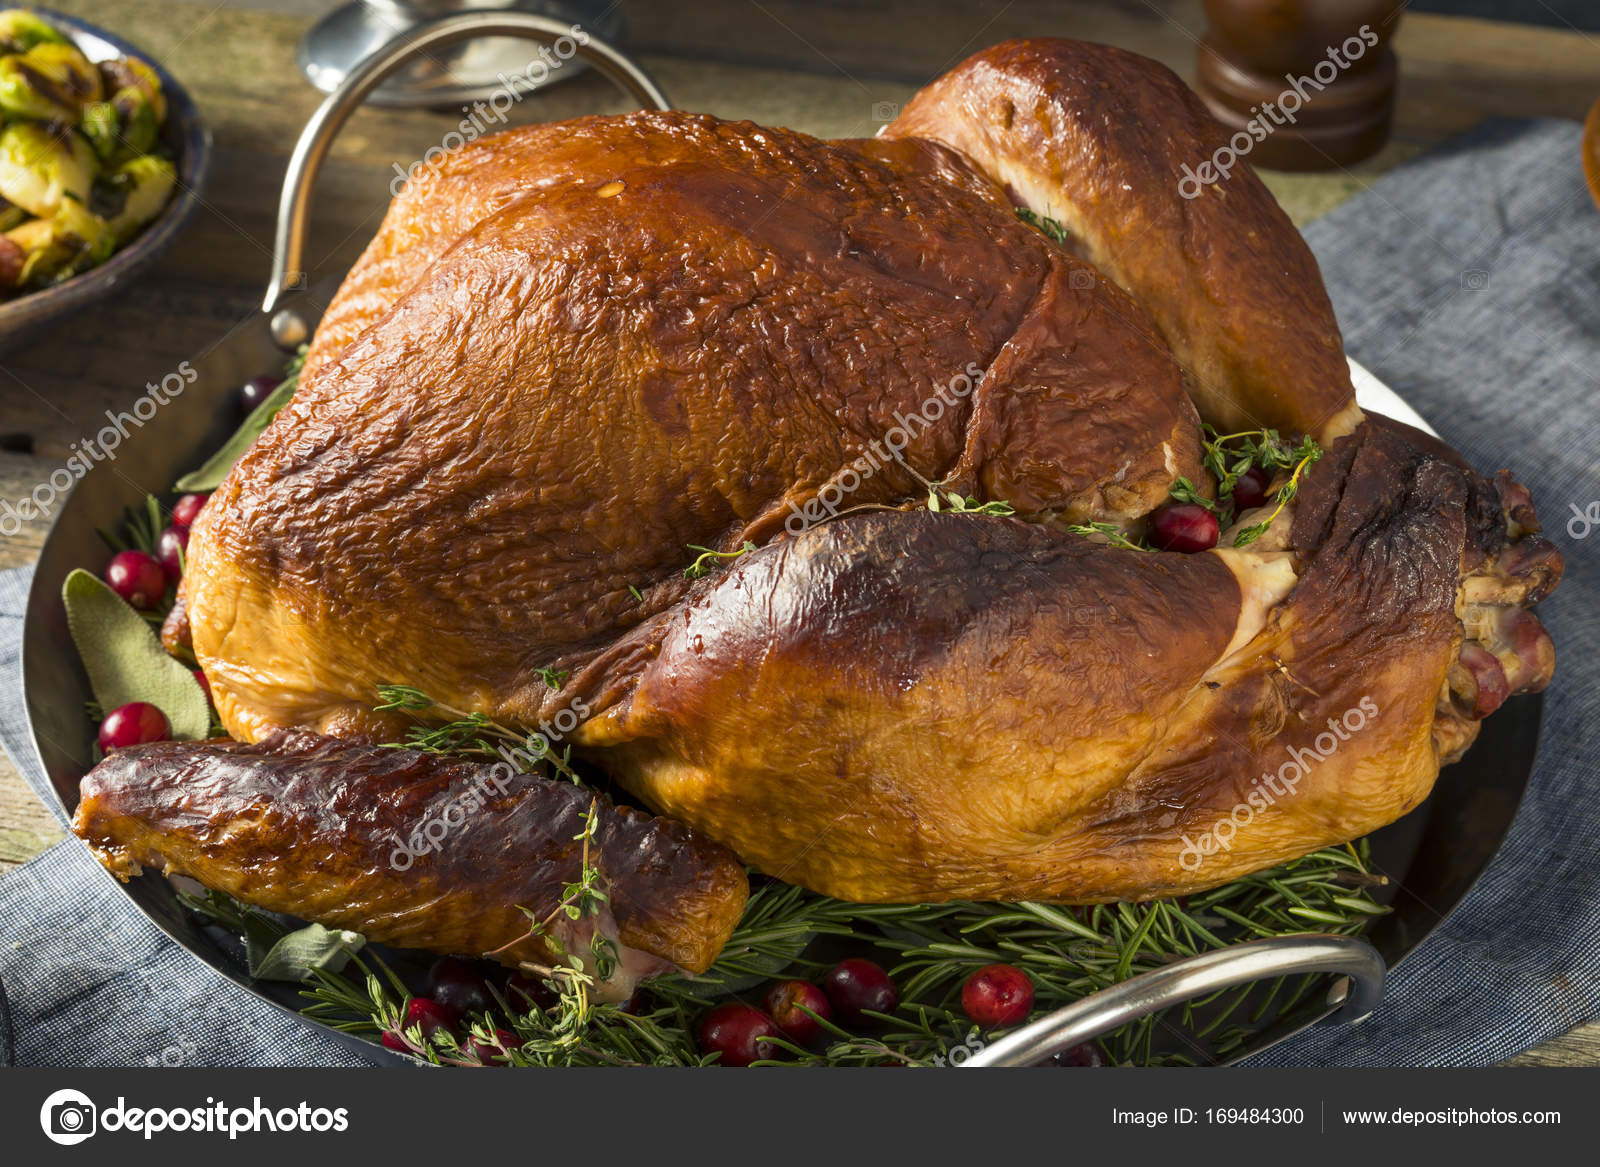 Organic Homemade Smoked Turkey Dinner For Thanksgiving With Sides Photo By Bhofack2